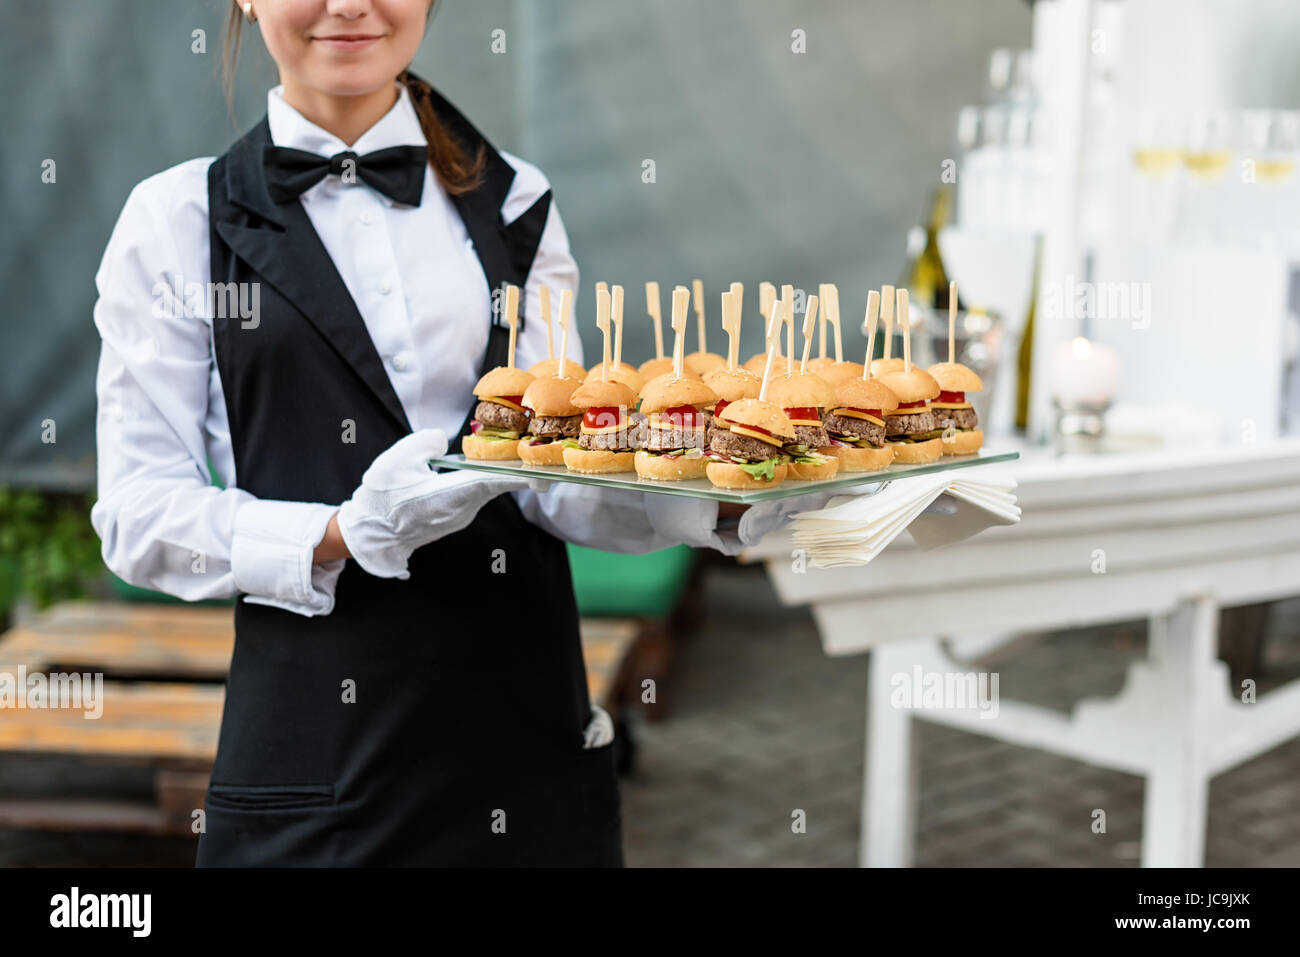 Catering Service Waiter Carrying A Tray Of Appetizers